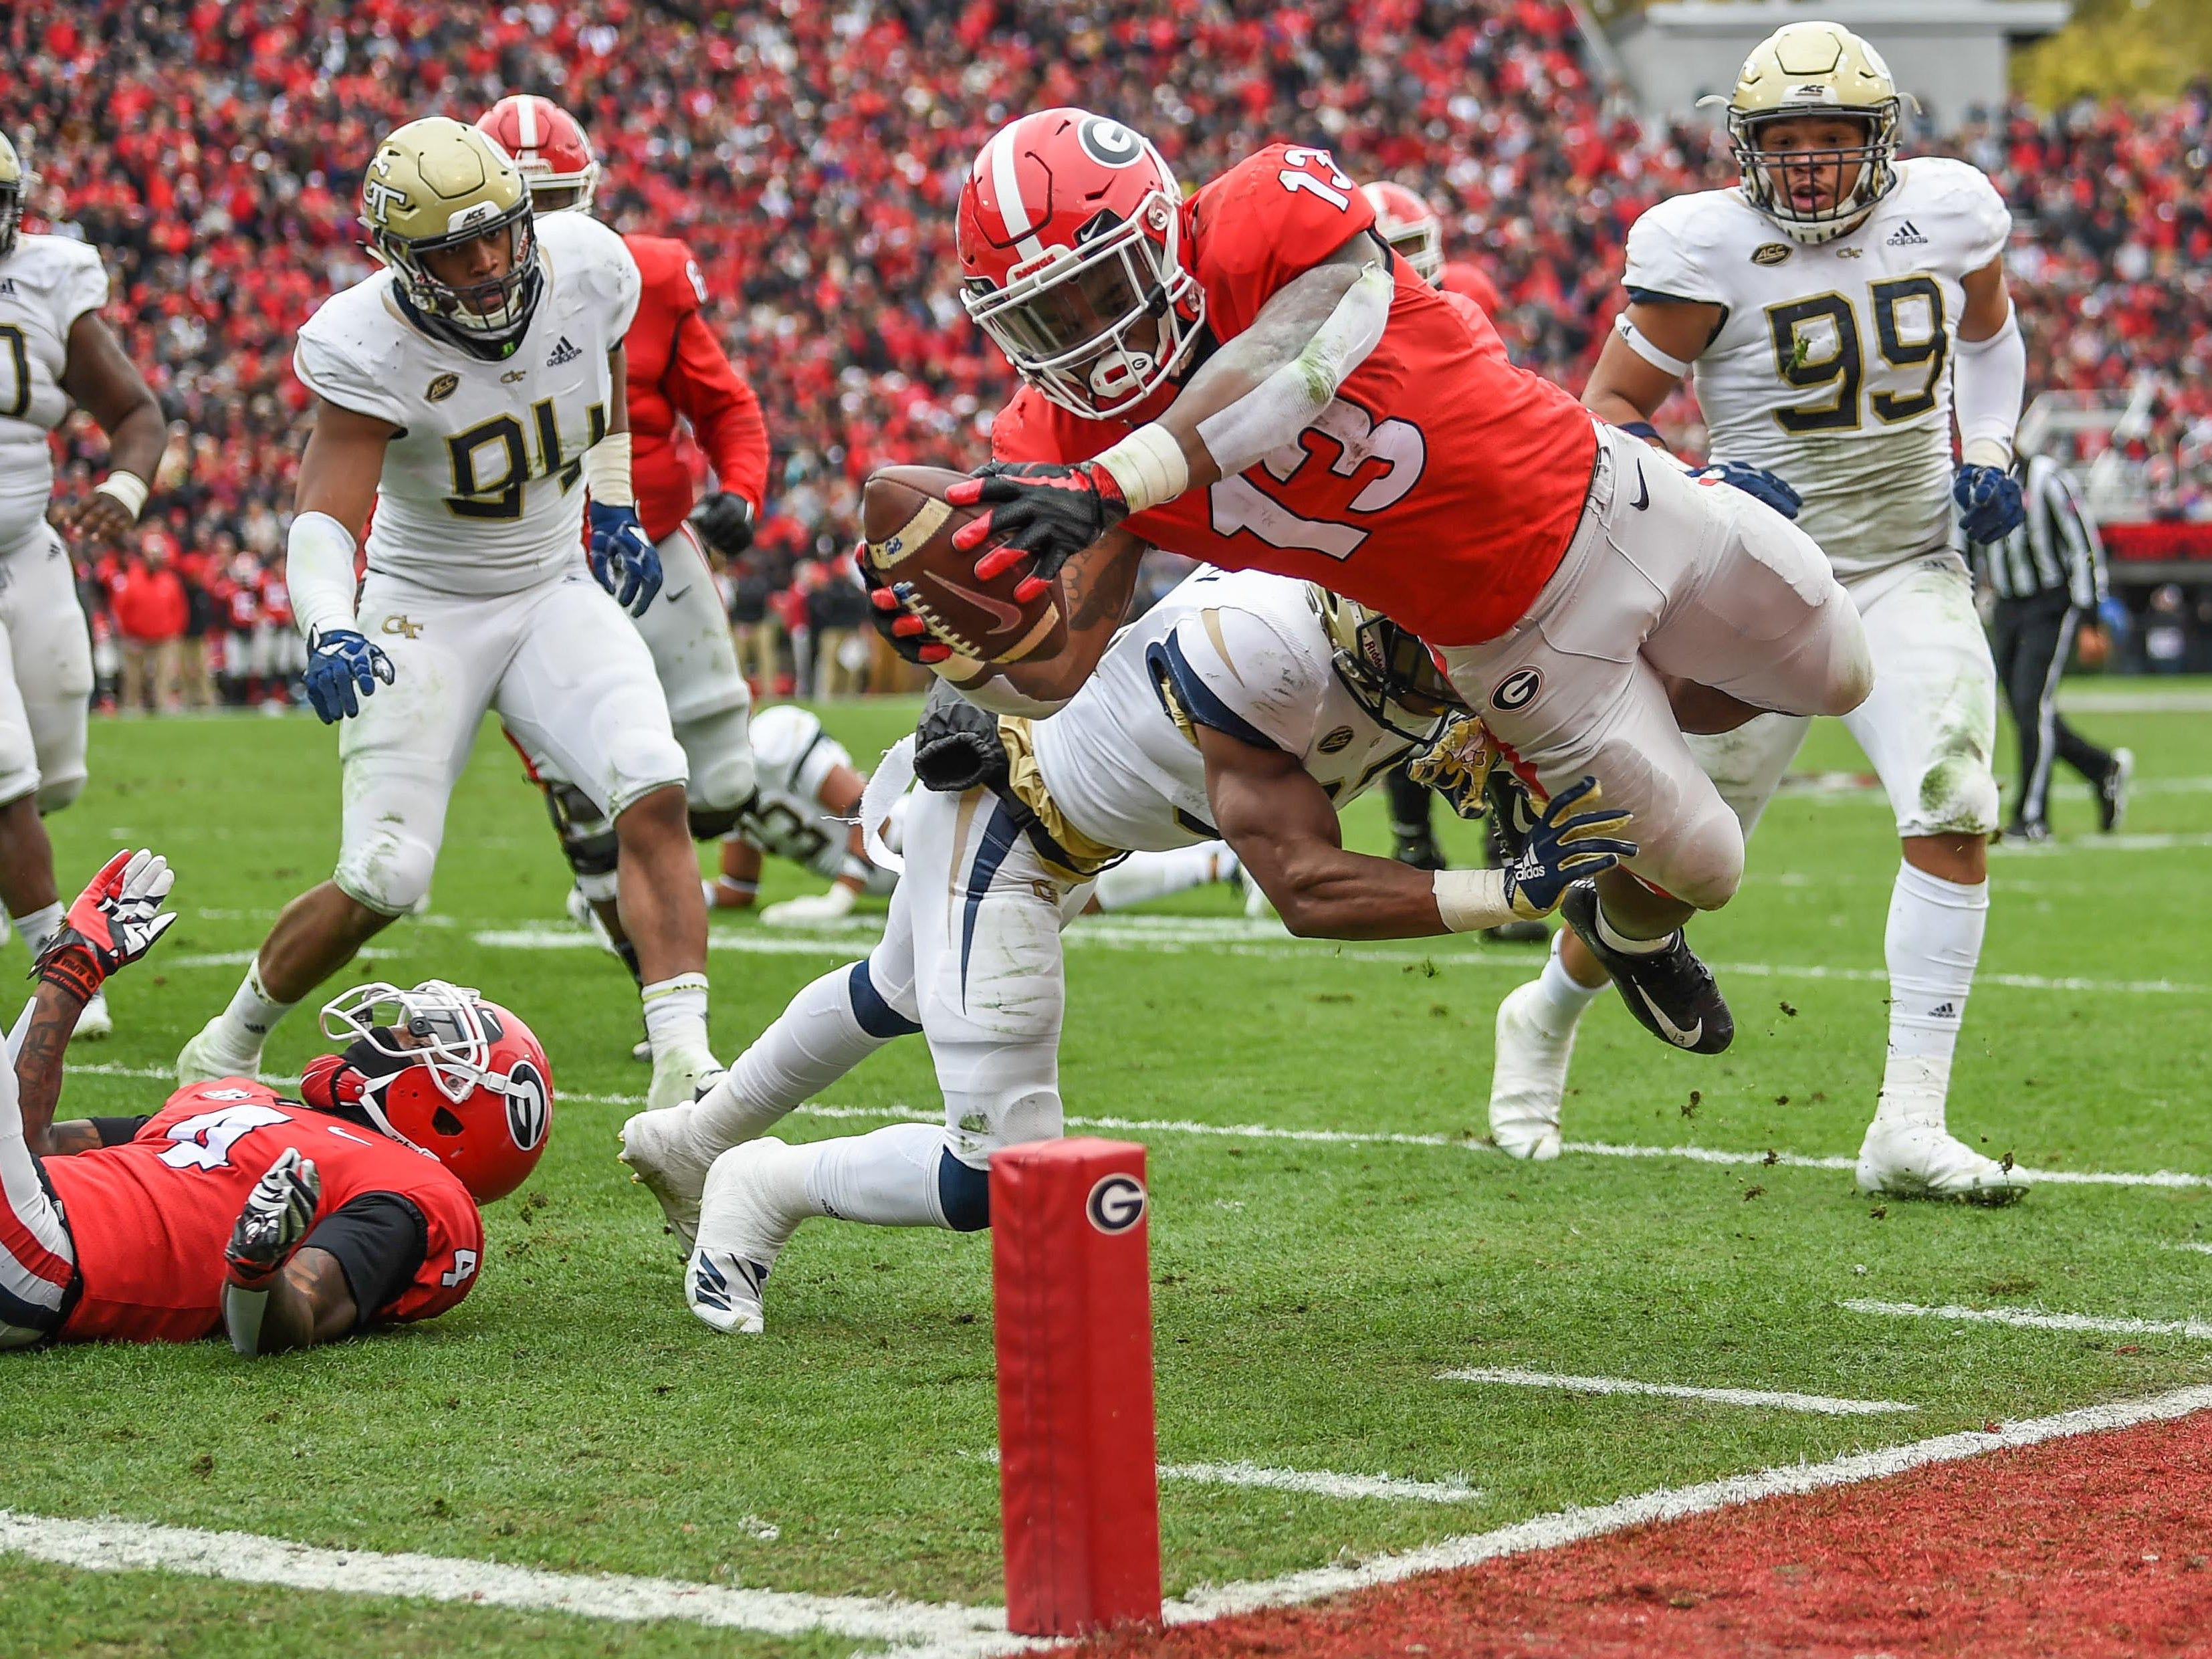 Georgia Bulldogs running back Elijah Holyfield (13) dives for a touchdown against the Georgia Tech Yellow Jackets during the first half at Sanford Stadium.